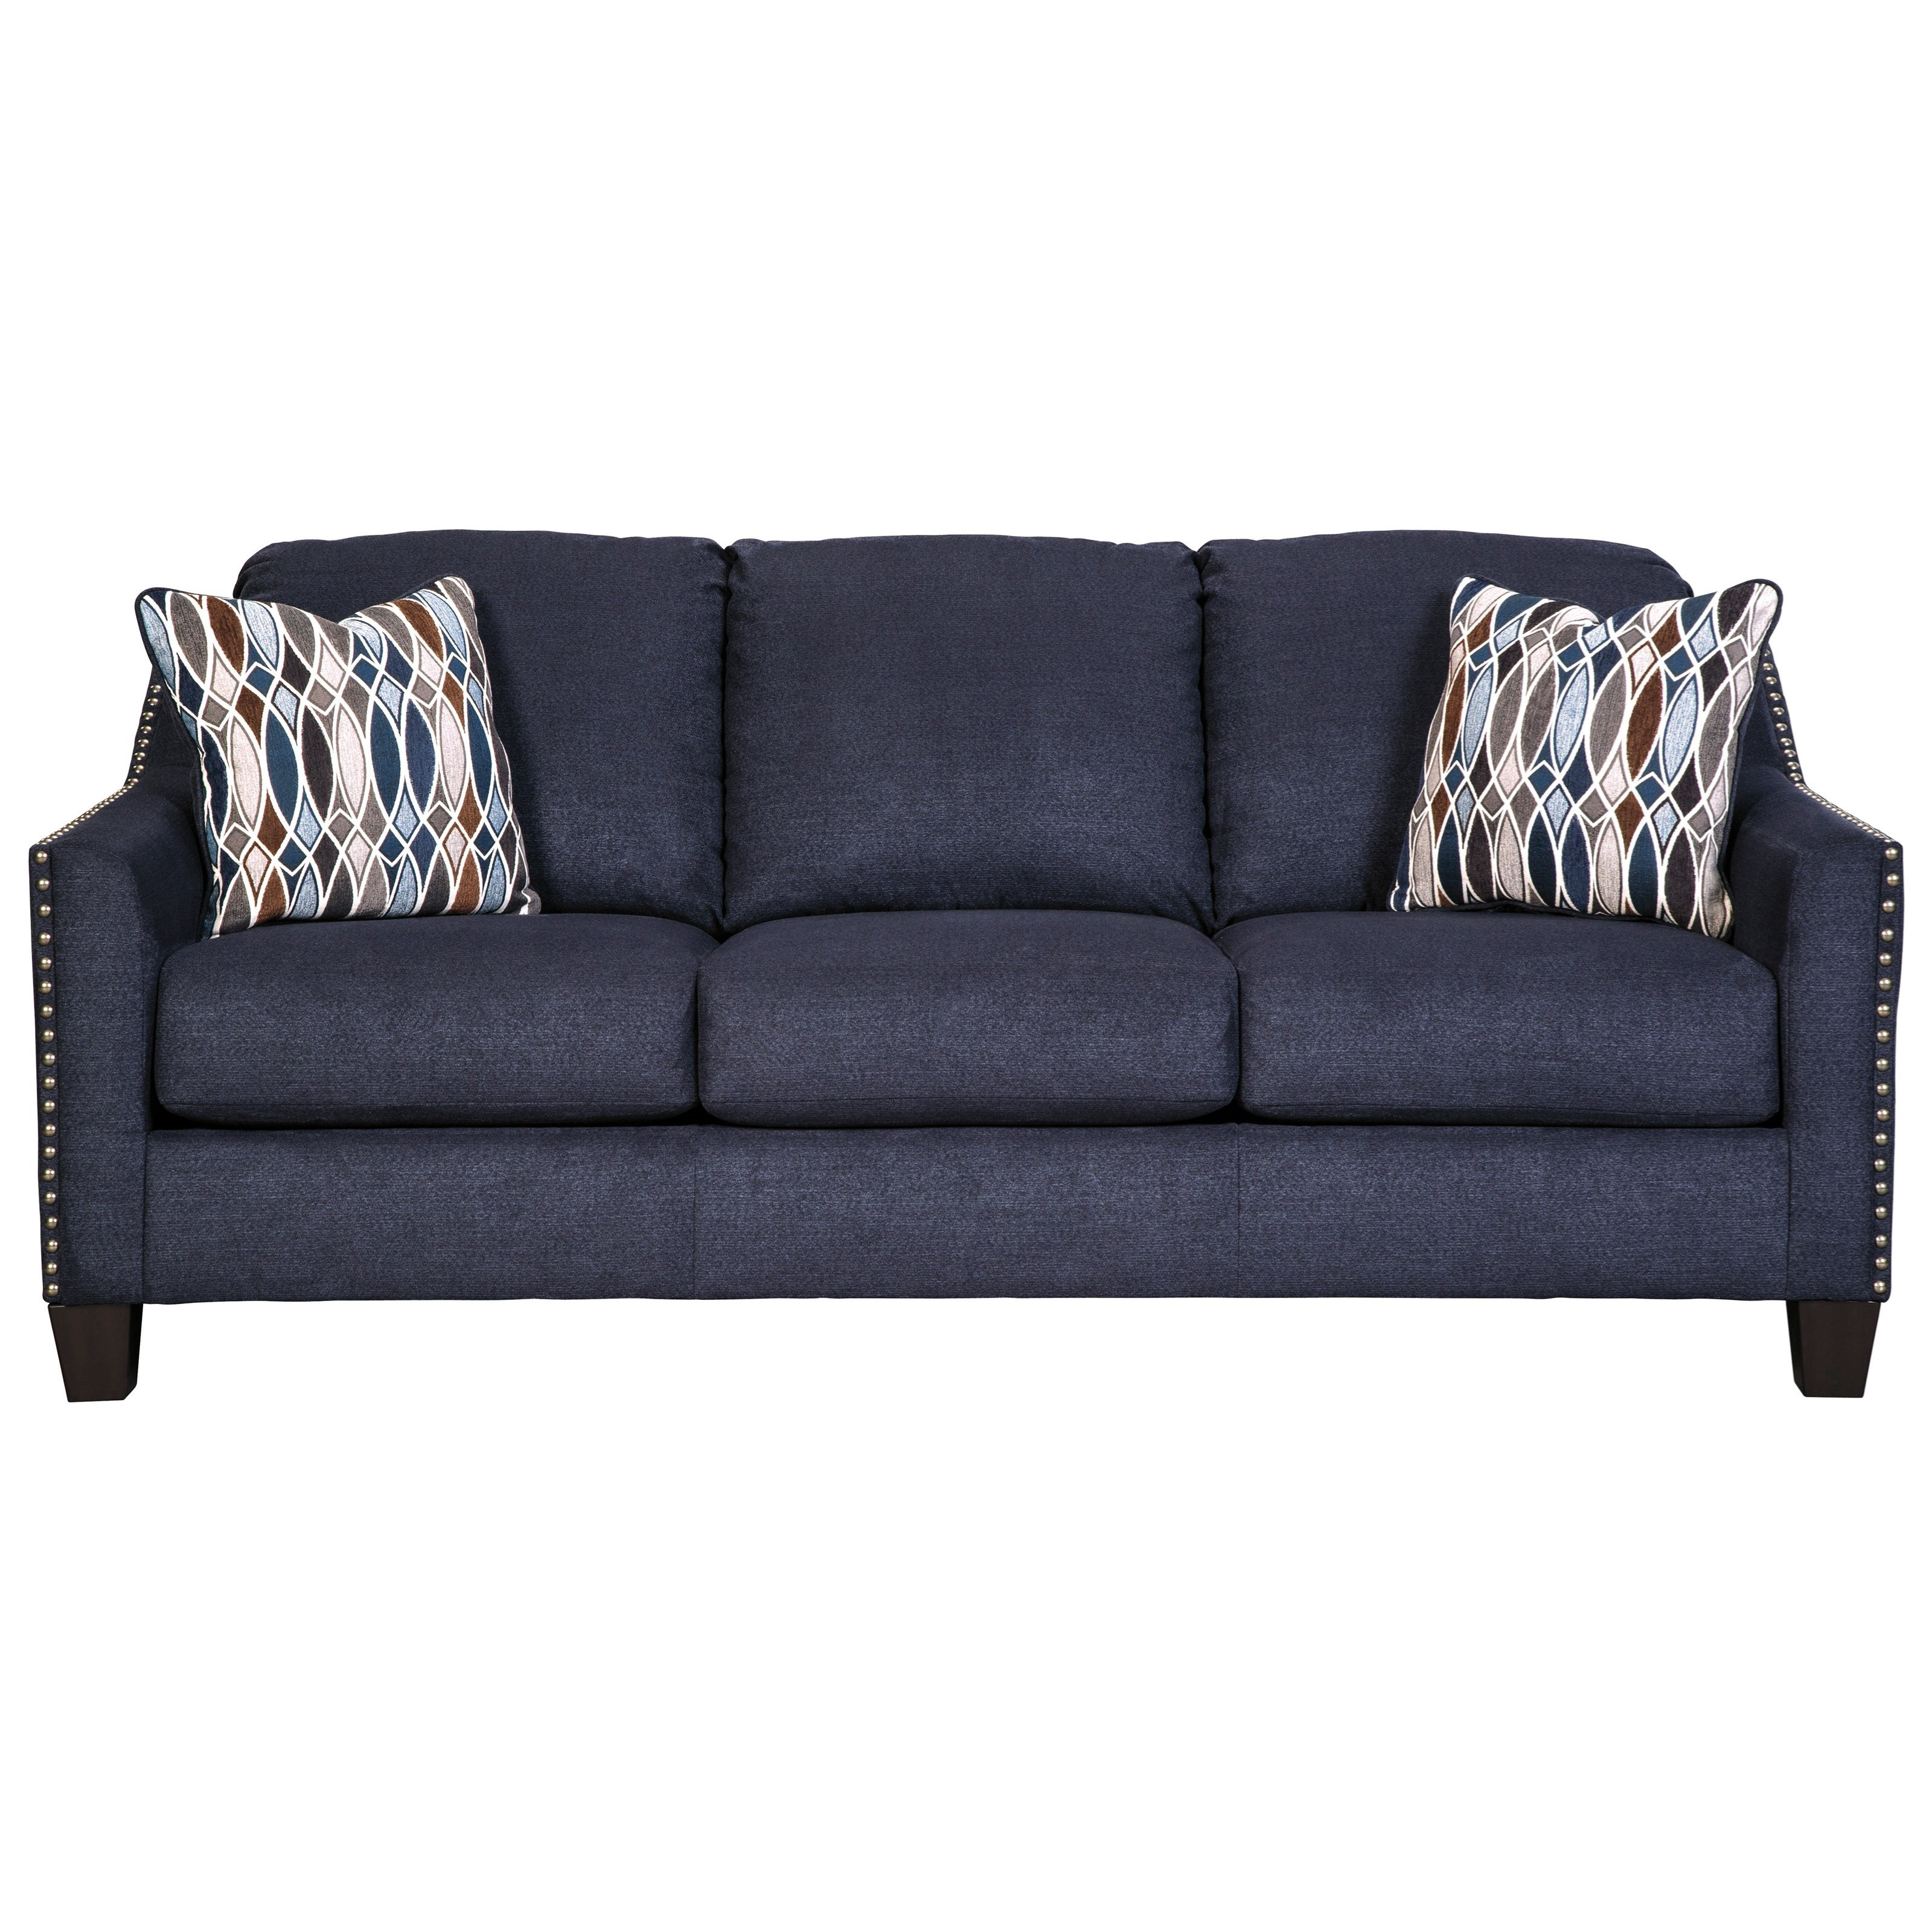 Creeal Heights Sofa Sleeper by Benchcraft at Walker's Furniture